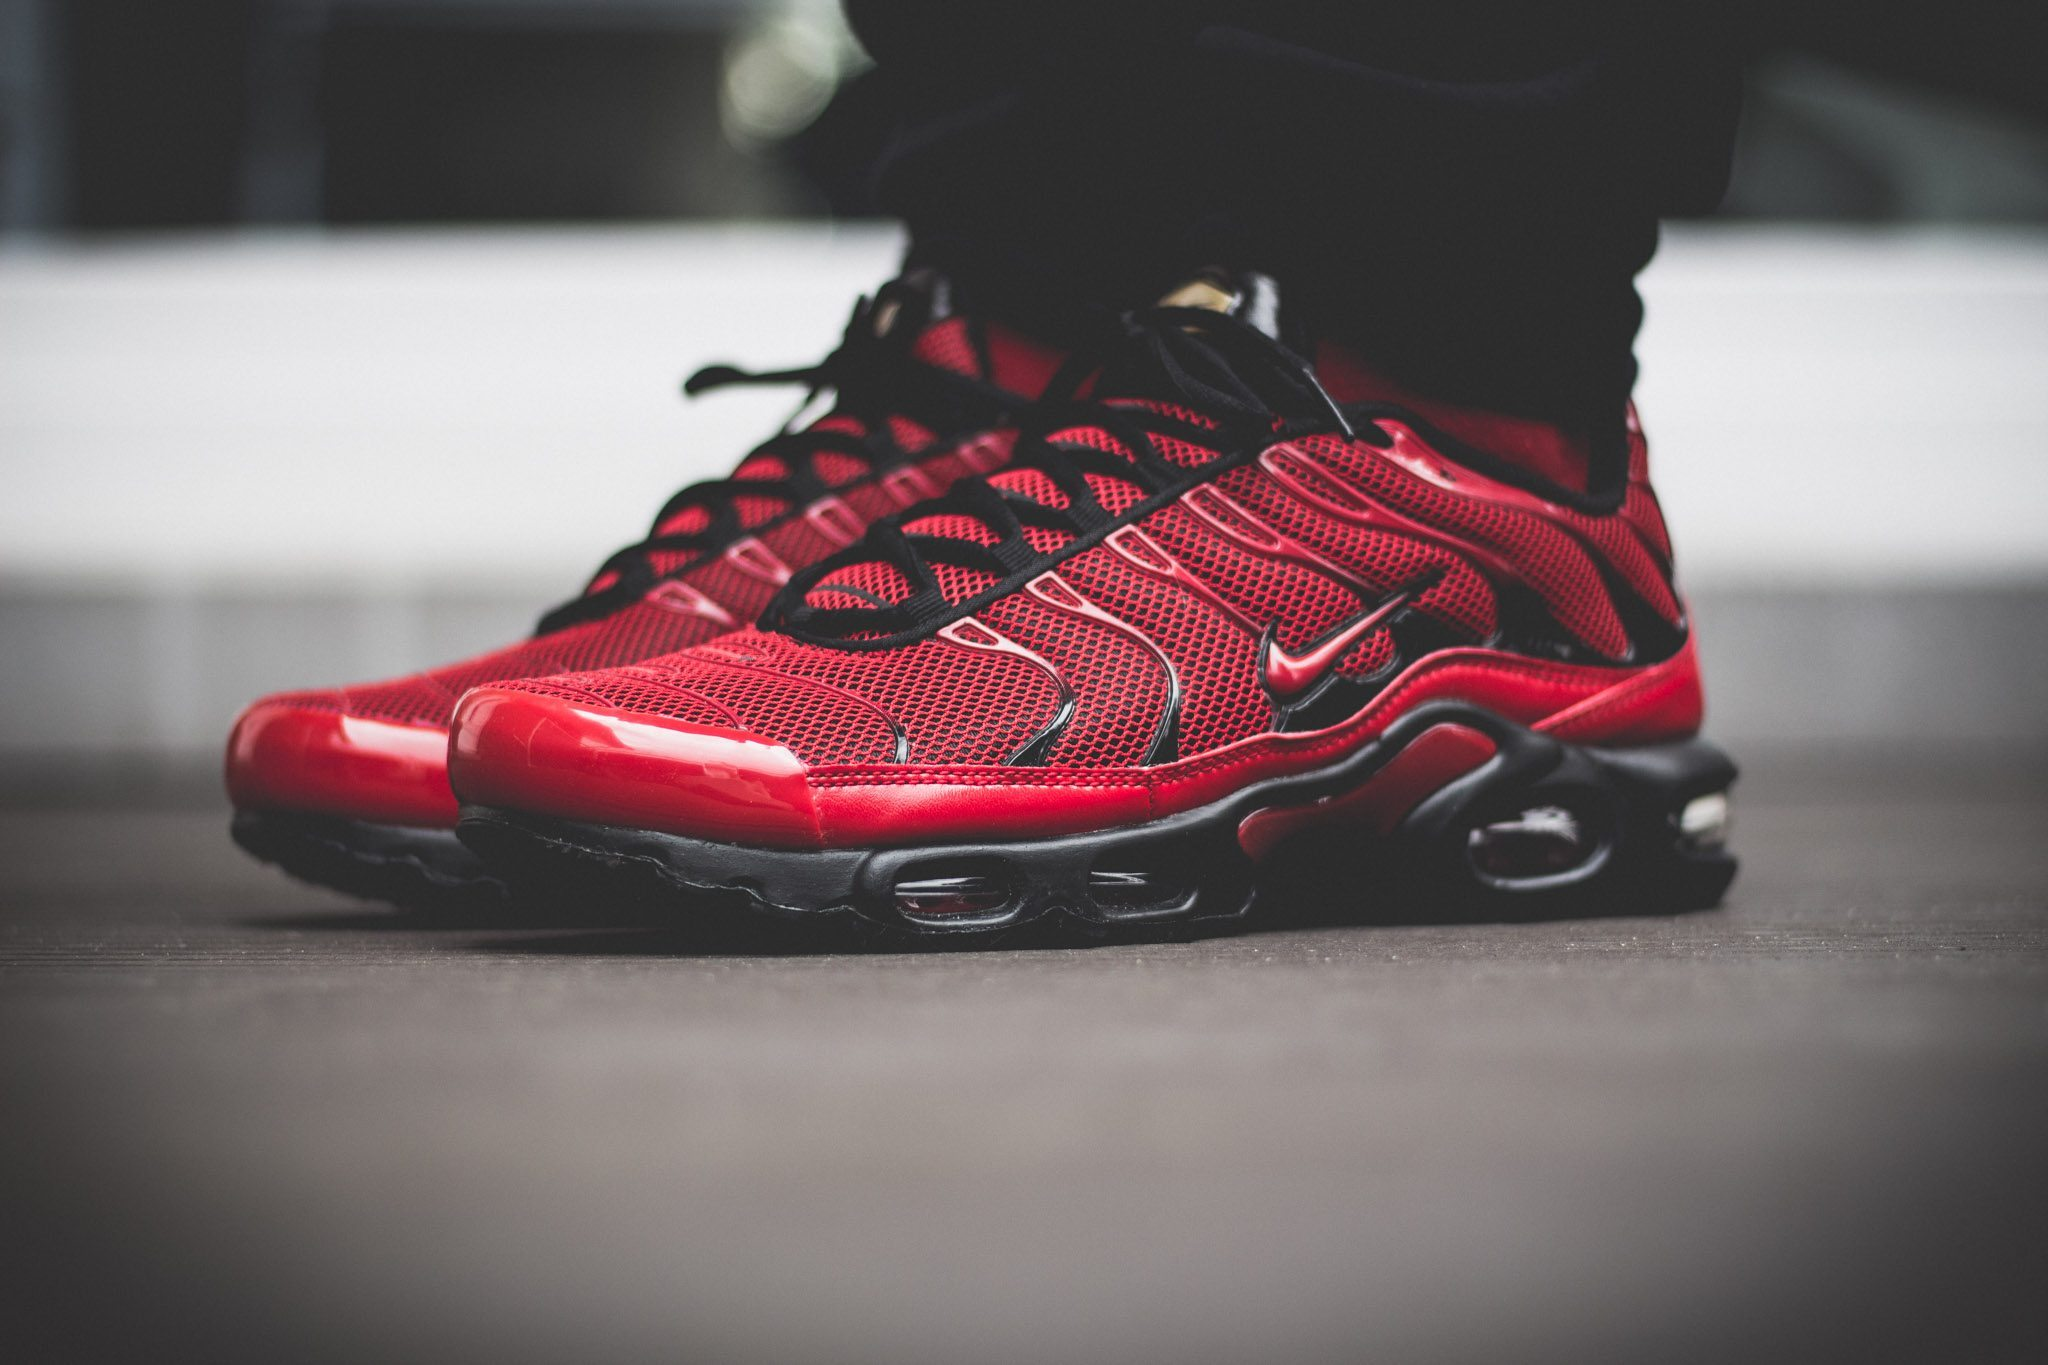 Nike Tuned 1 Red On Feet 5